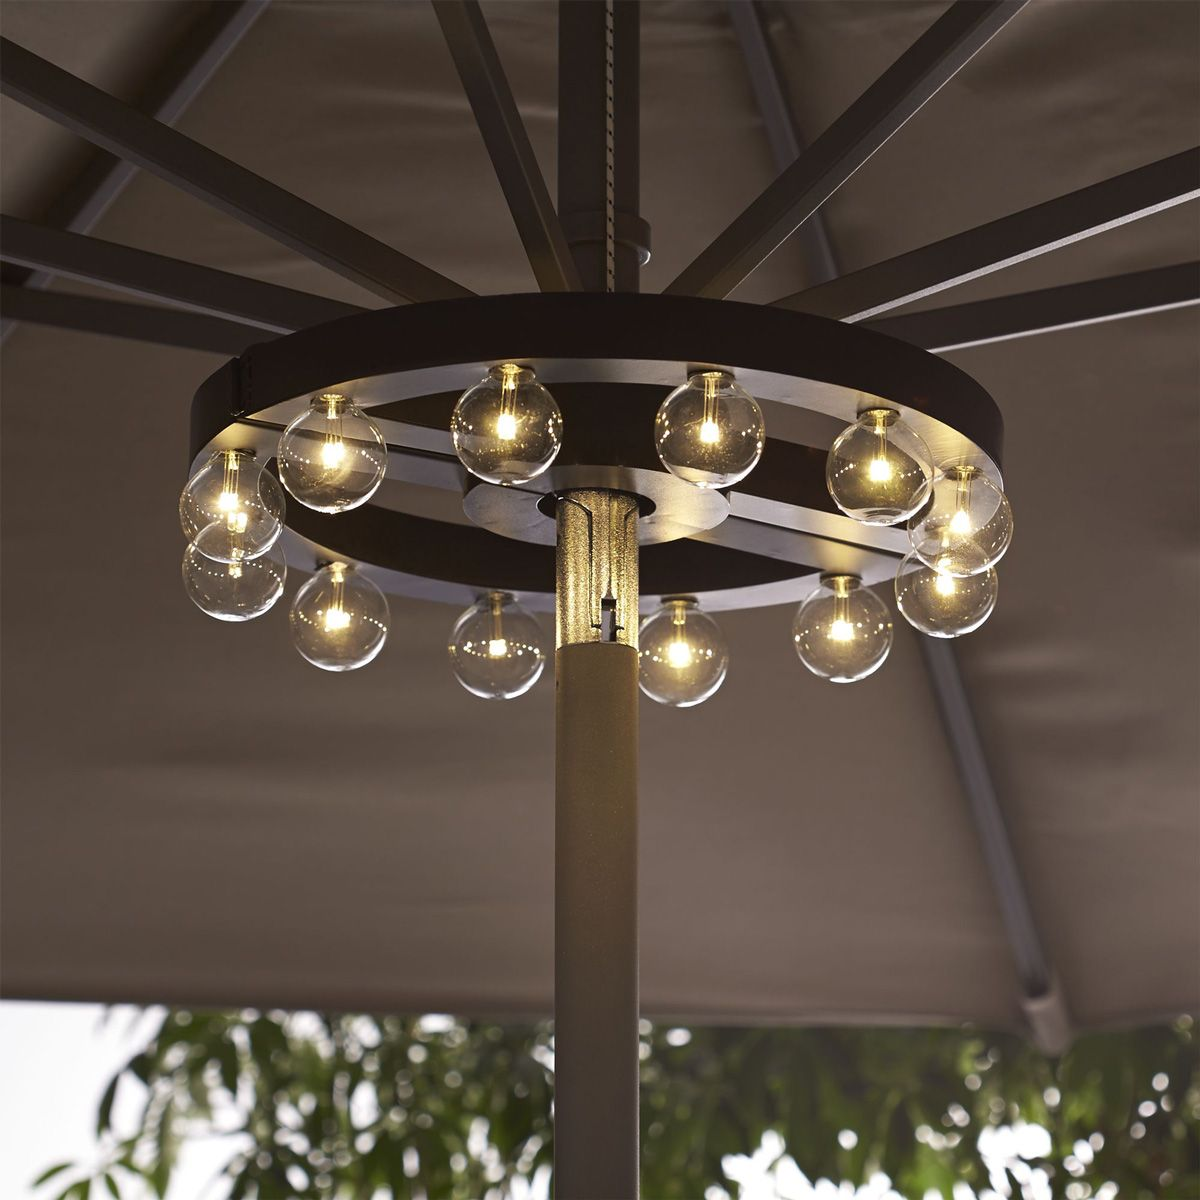 Solar Lights For Patio Umbrellas Adorable Patio Umbrella Marquee Lights  Pinterest  Patio Umbrellas Marquee Decorating Design